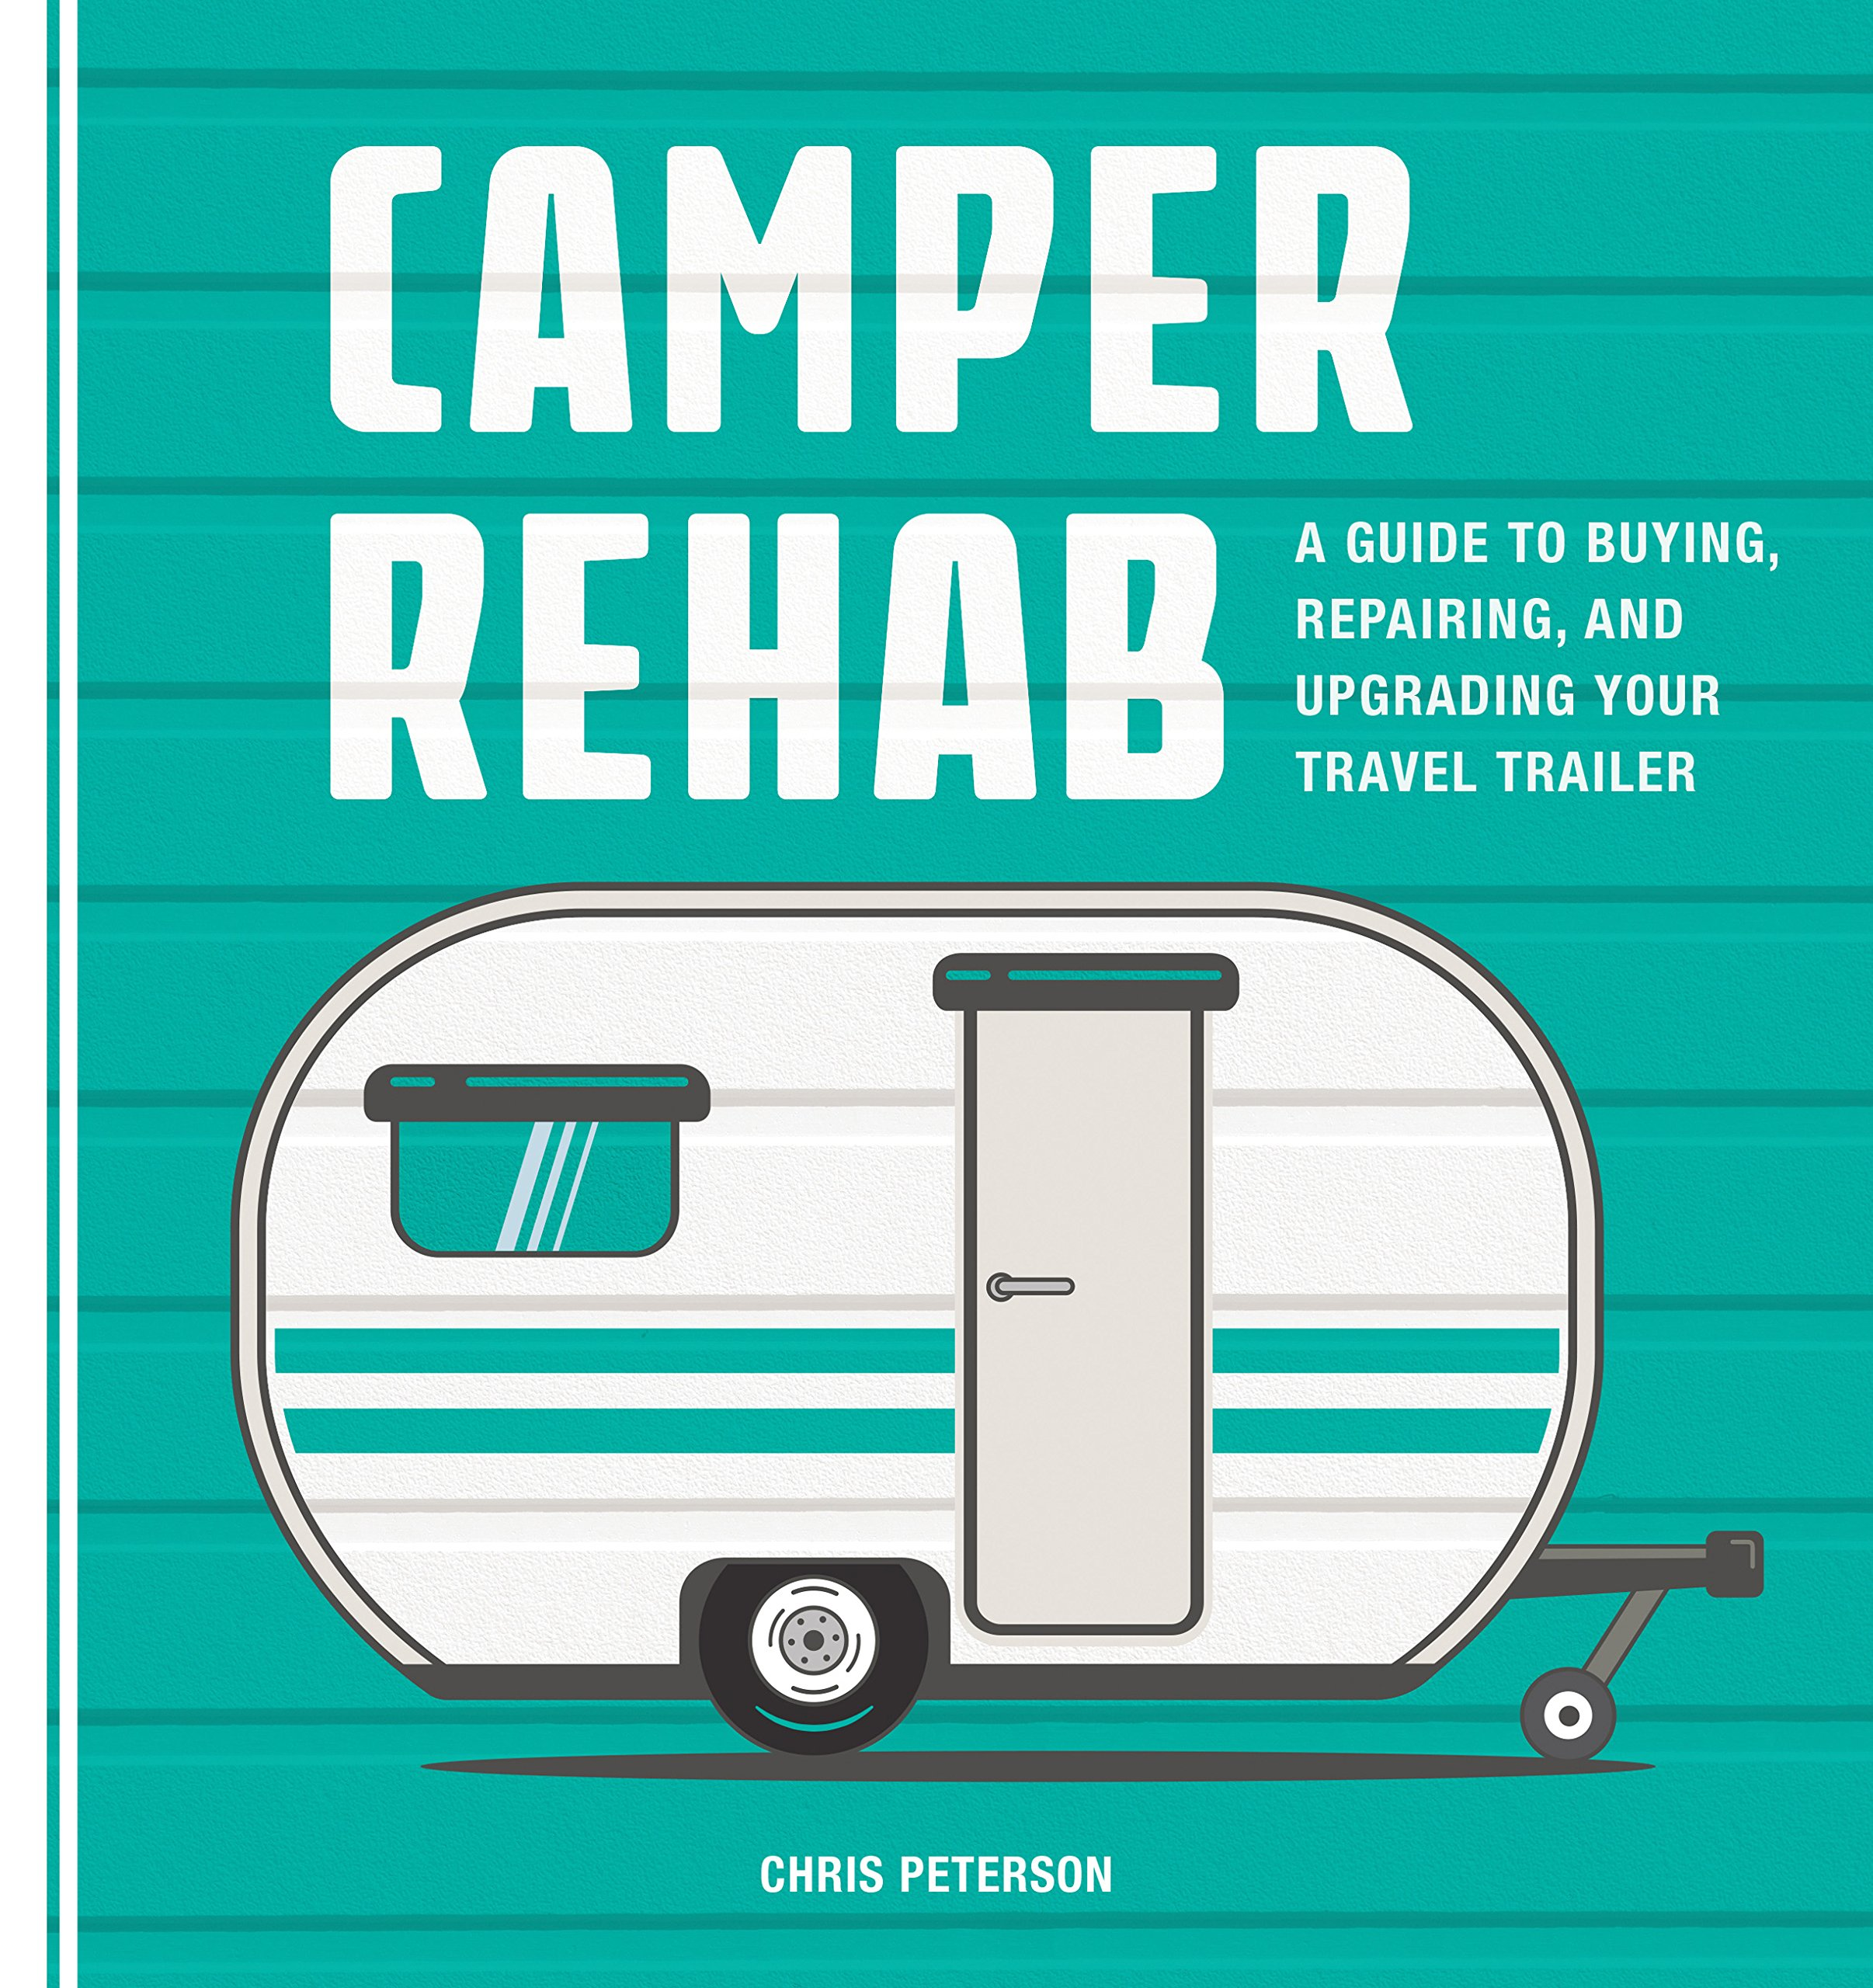 Camper Rehab A Guide To Buying Repairing And Upgrading Your Our Trailer Wiring Travel Chris Peterson 9780760353523 Books